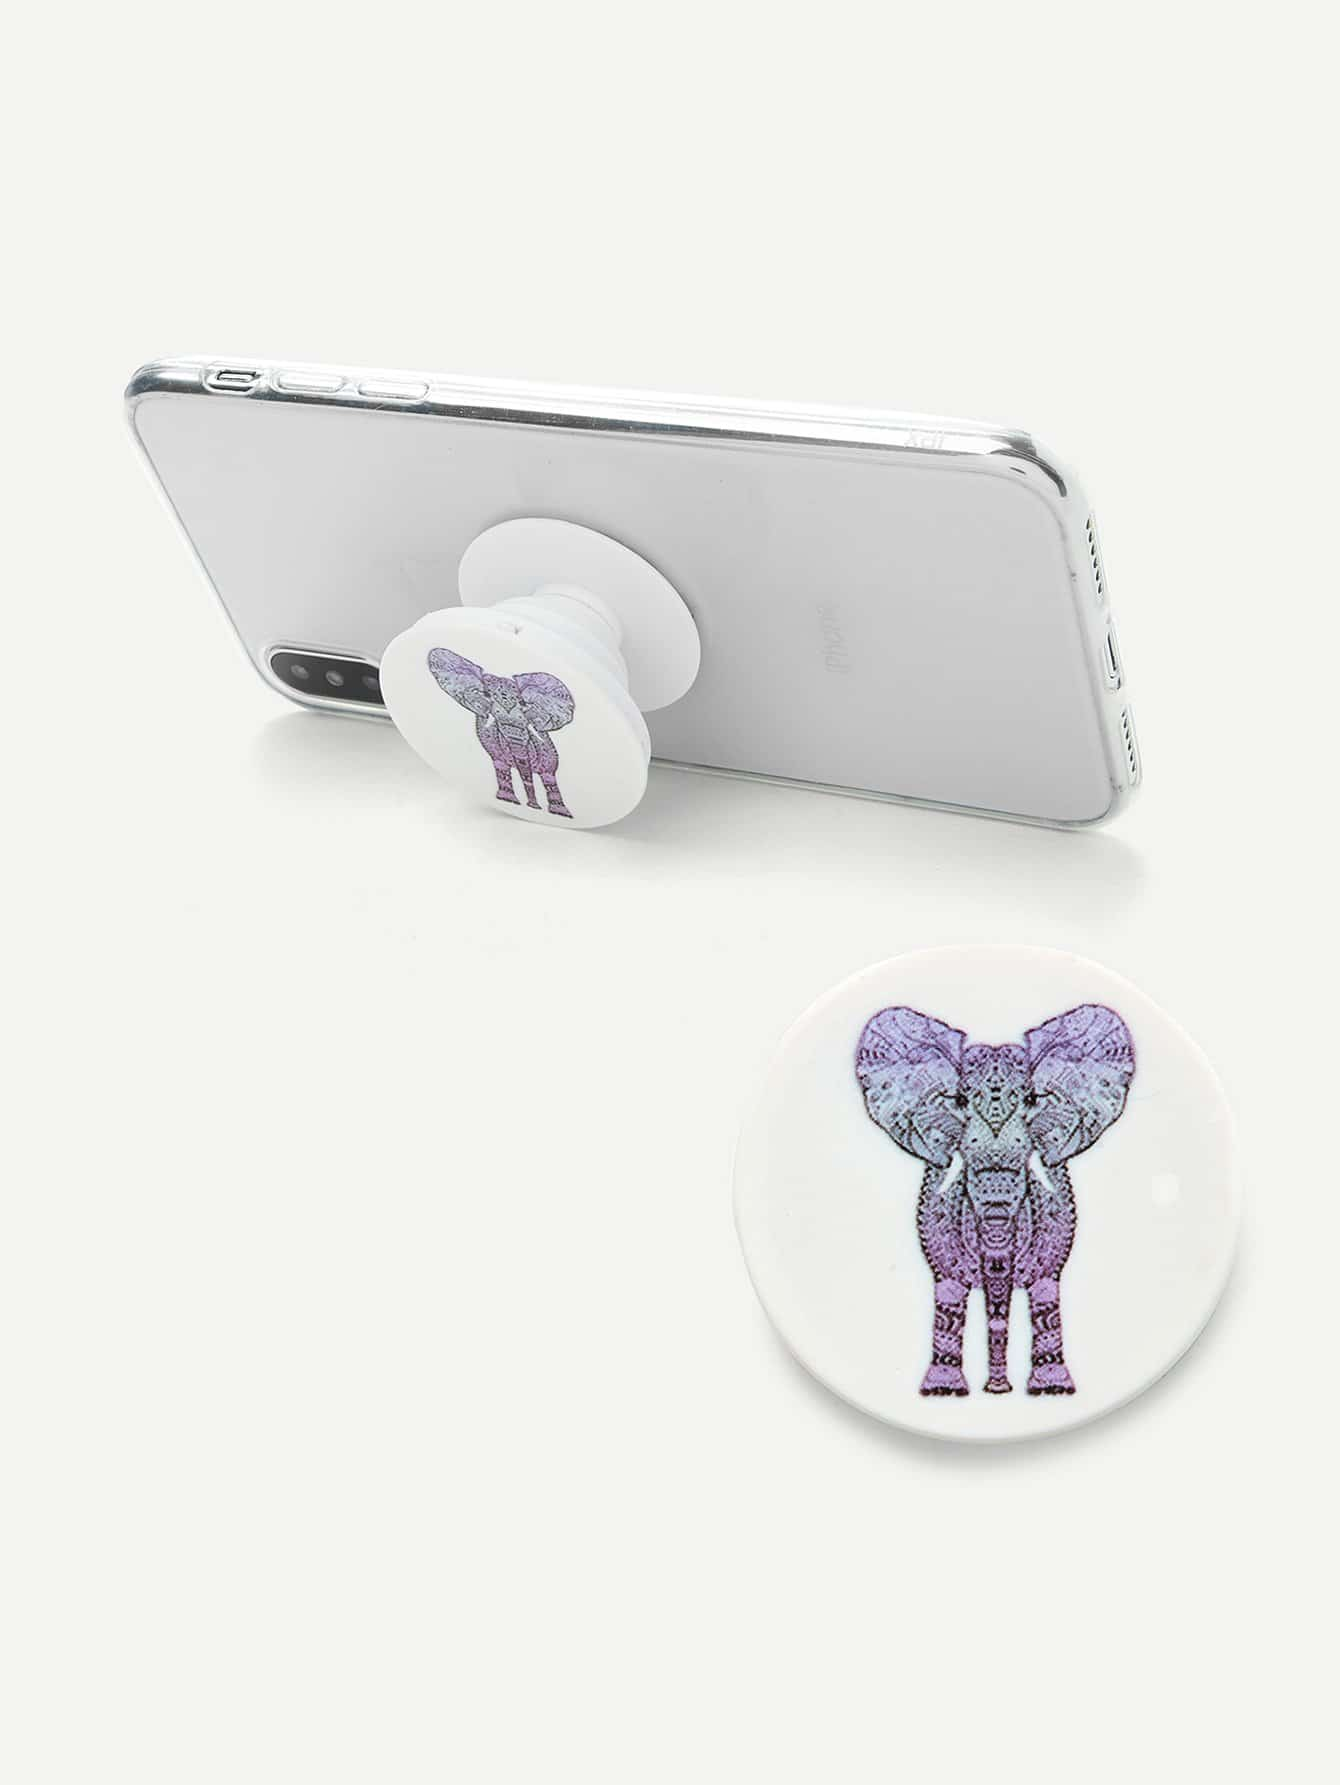 Elephant Pattern Gasbag Phone Holder avocado pattern gasbag phone holder